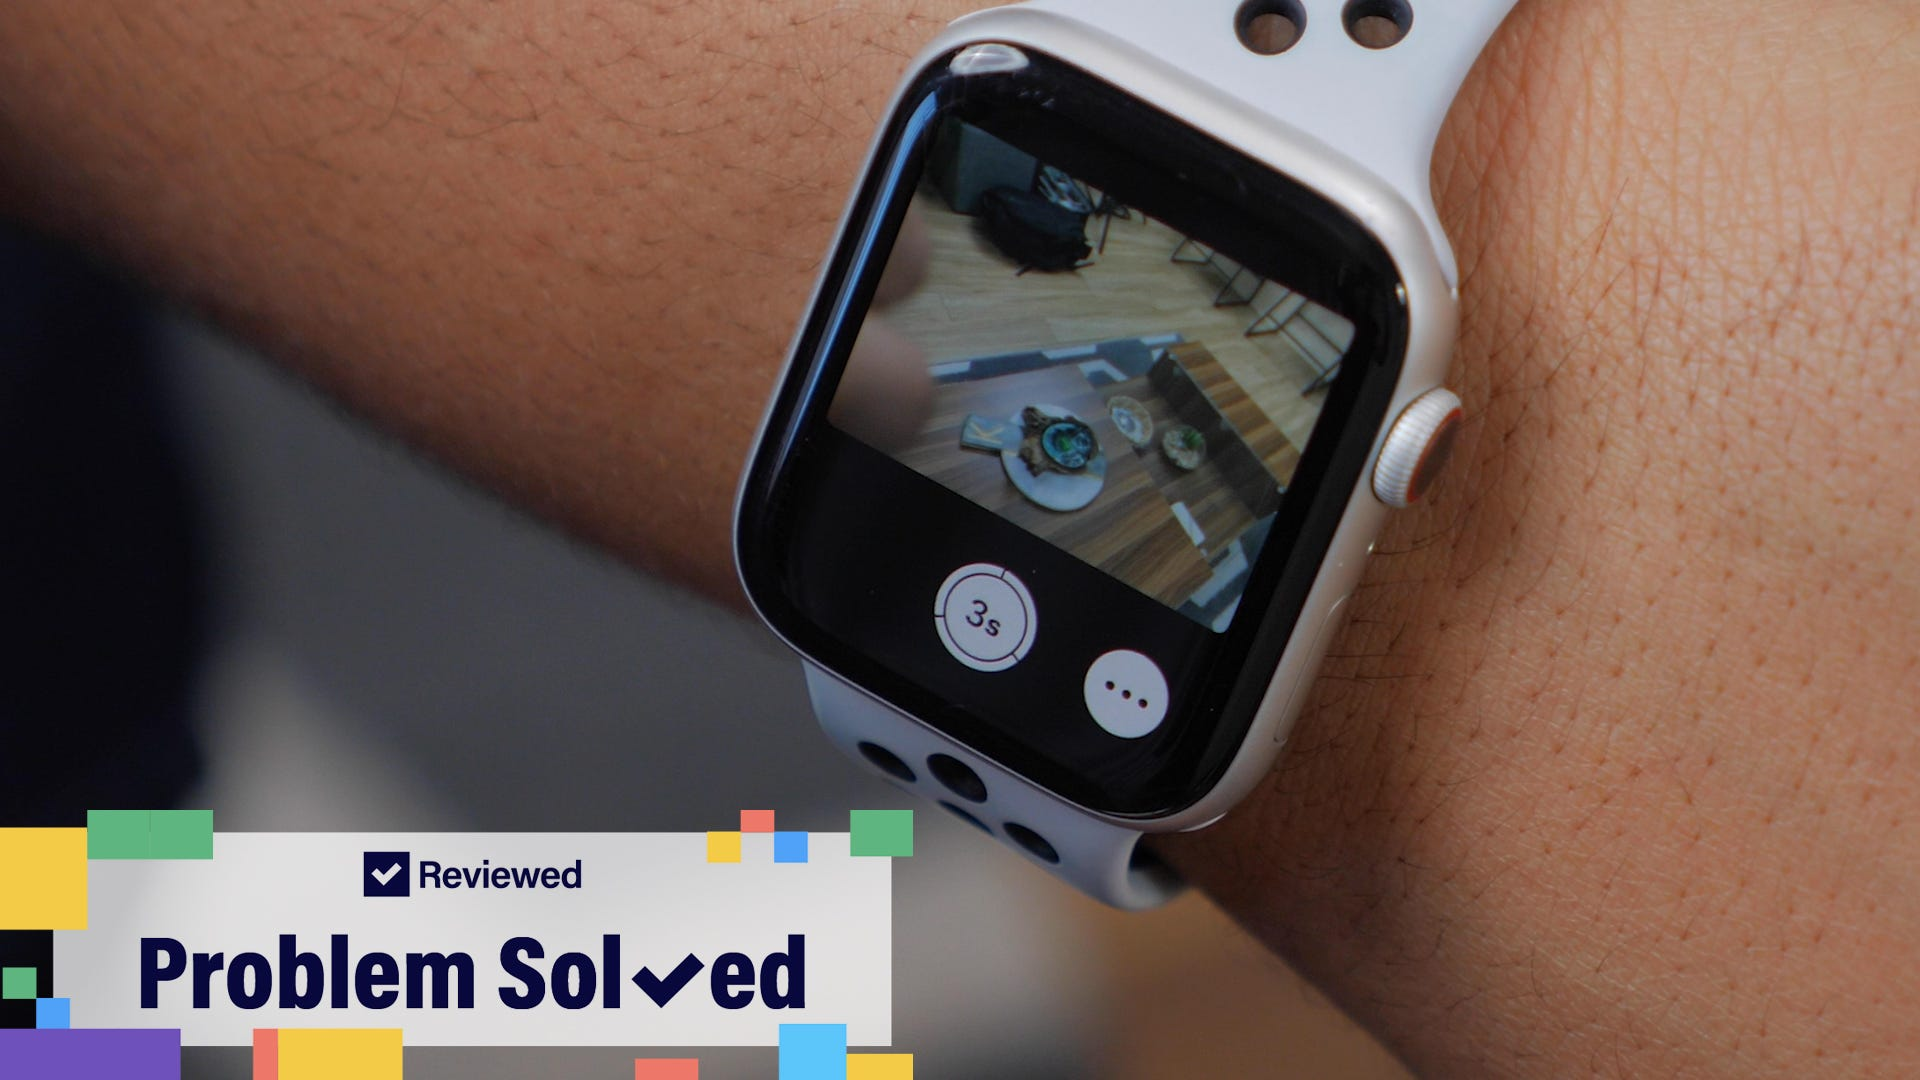 How to pair your smartwatch with the camera on your phone